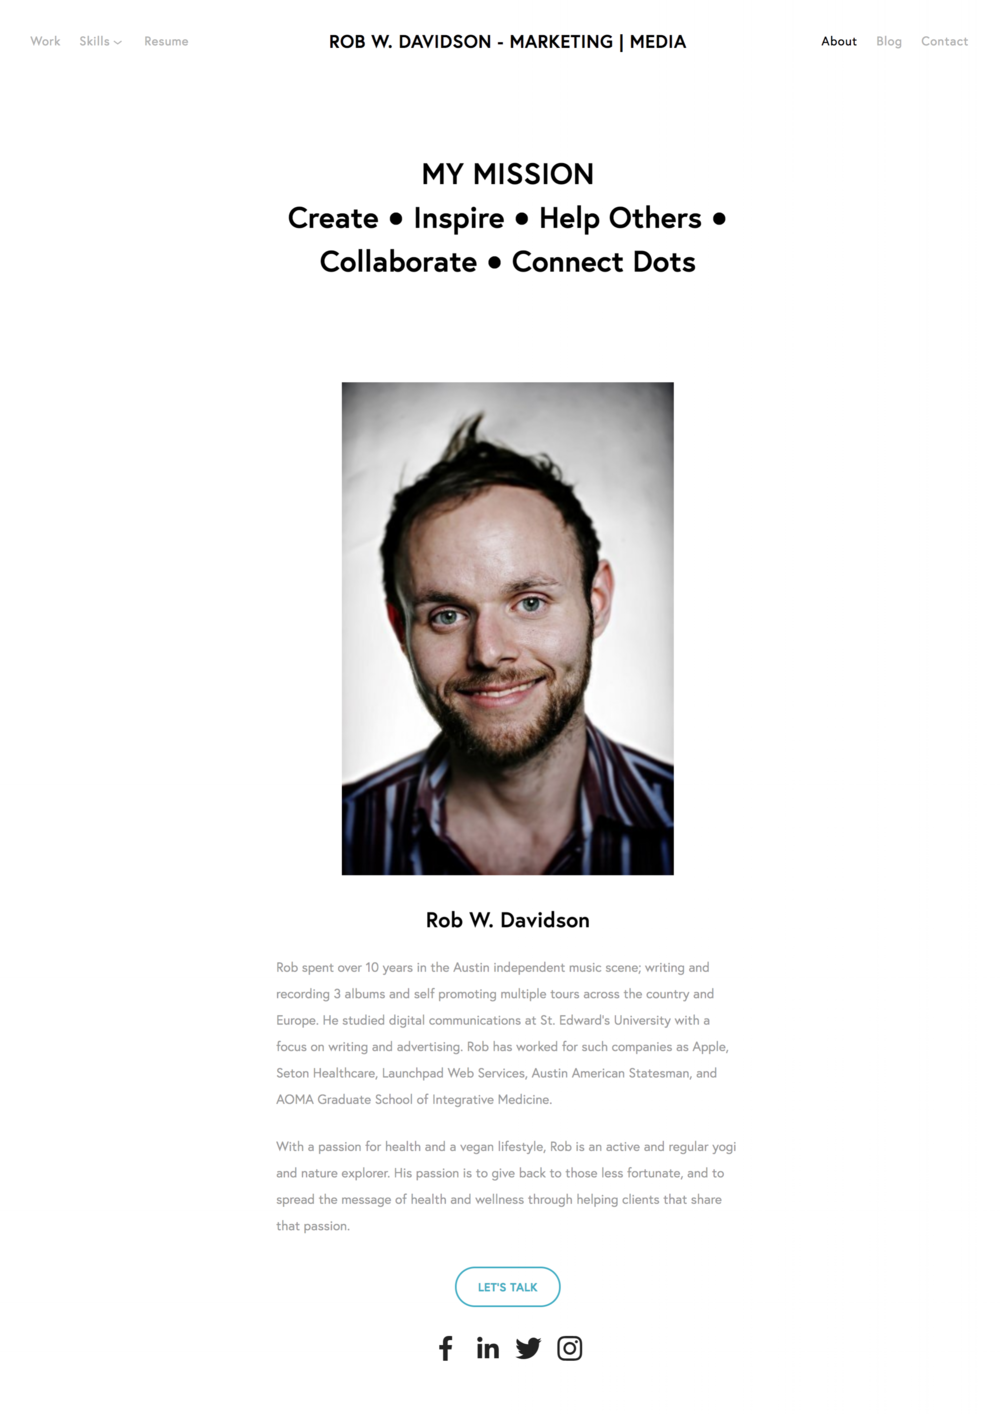 About Rob W  Davidson   Digital Marketing Leader   Austin  TX — Rob W  Davidson   Marketing   Media 2.png